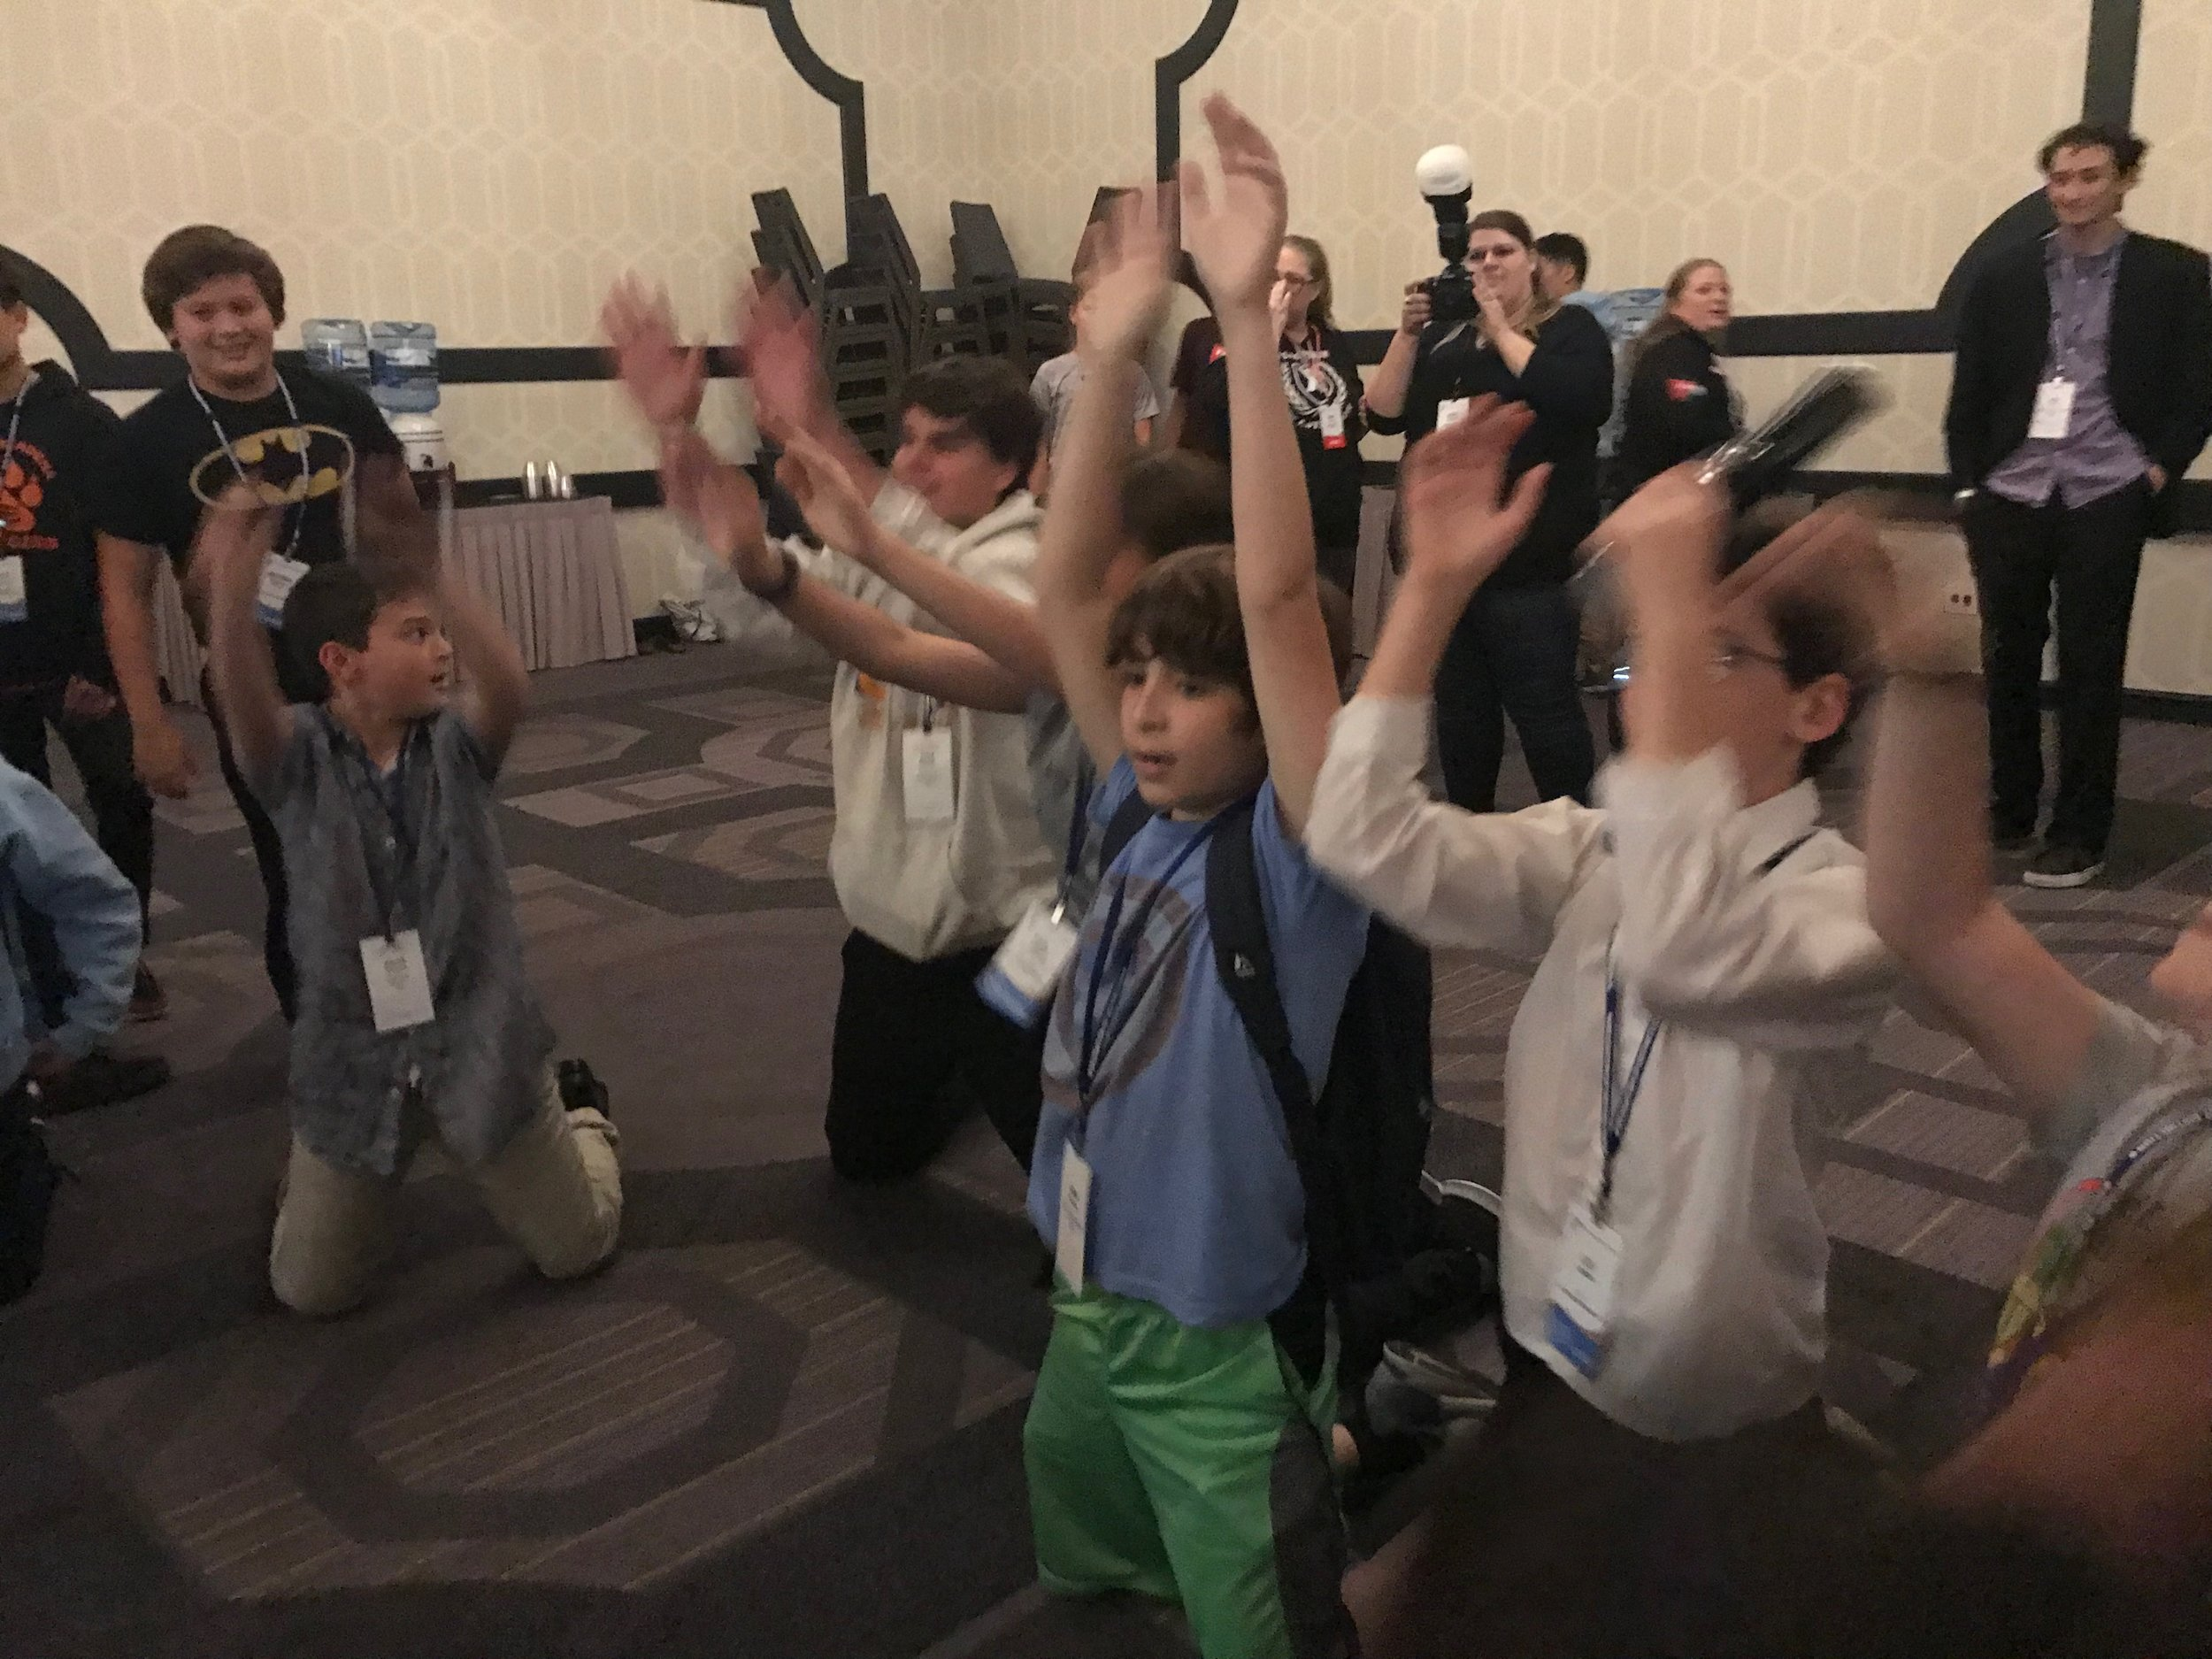 MUN Summit Conference -               story and photos by Ava Feldman